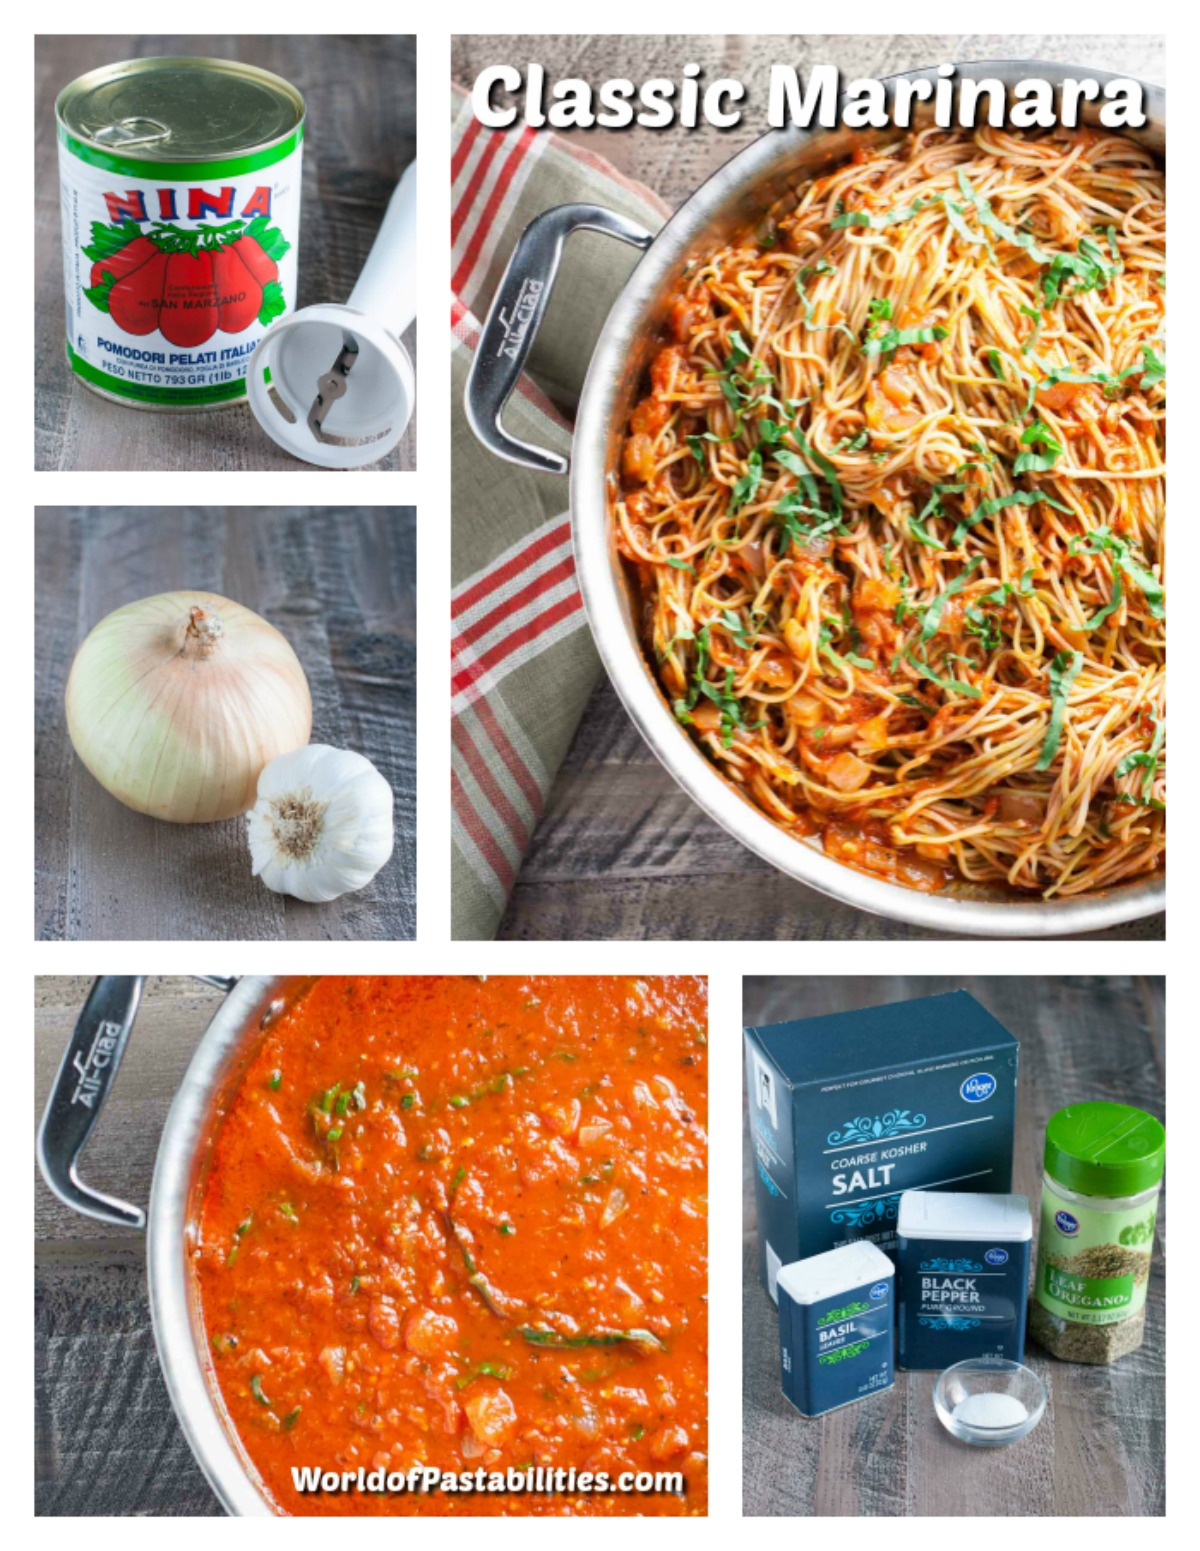 Classic Marinara Sauce | WorldofPastabilities.com | A versatile and delicious red sauce that will become your favorite go-to recipe! Italian tomatoes, olive oil, onions, and herbs - simple and fabulous flavors!